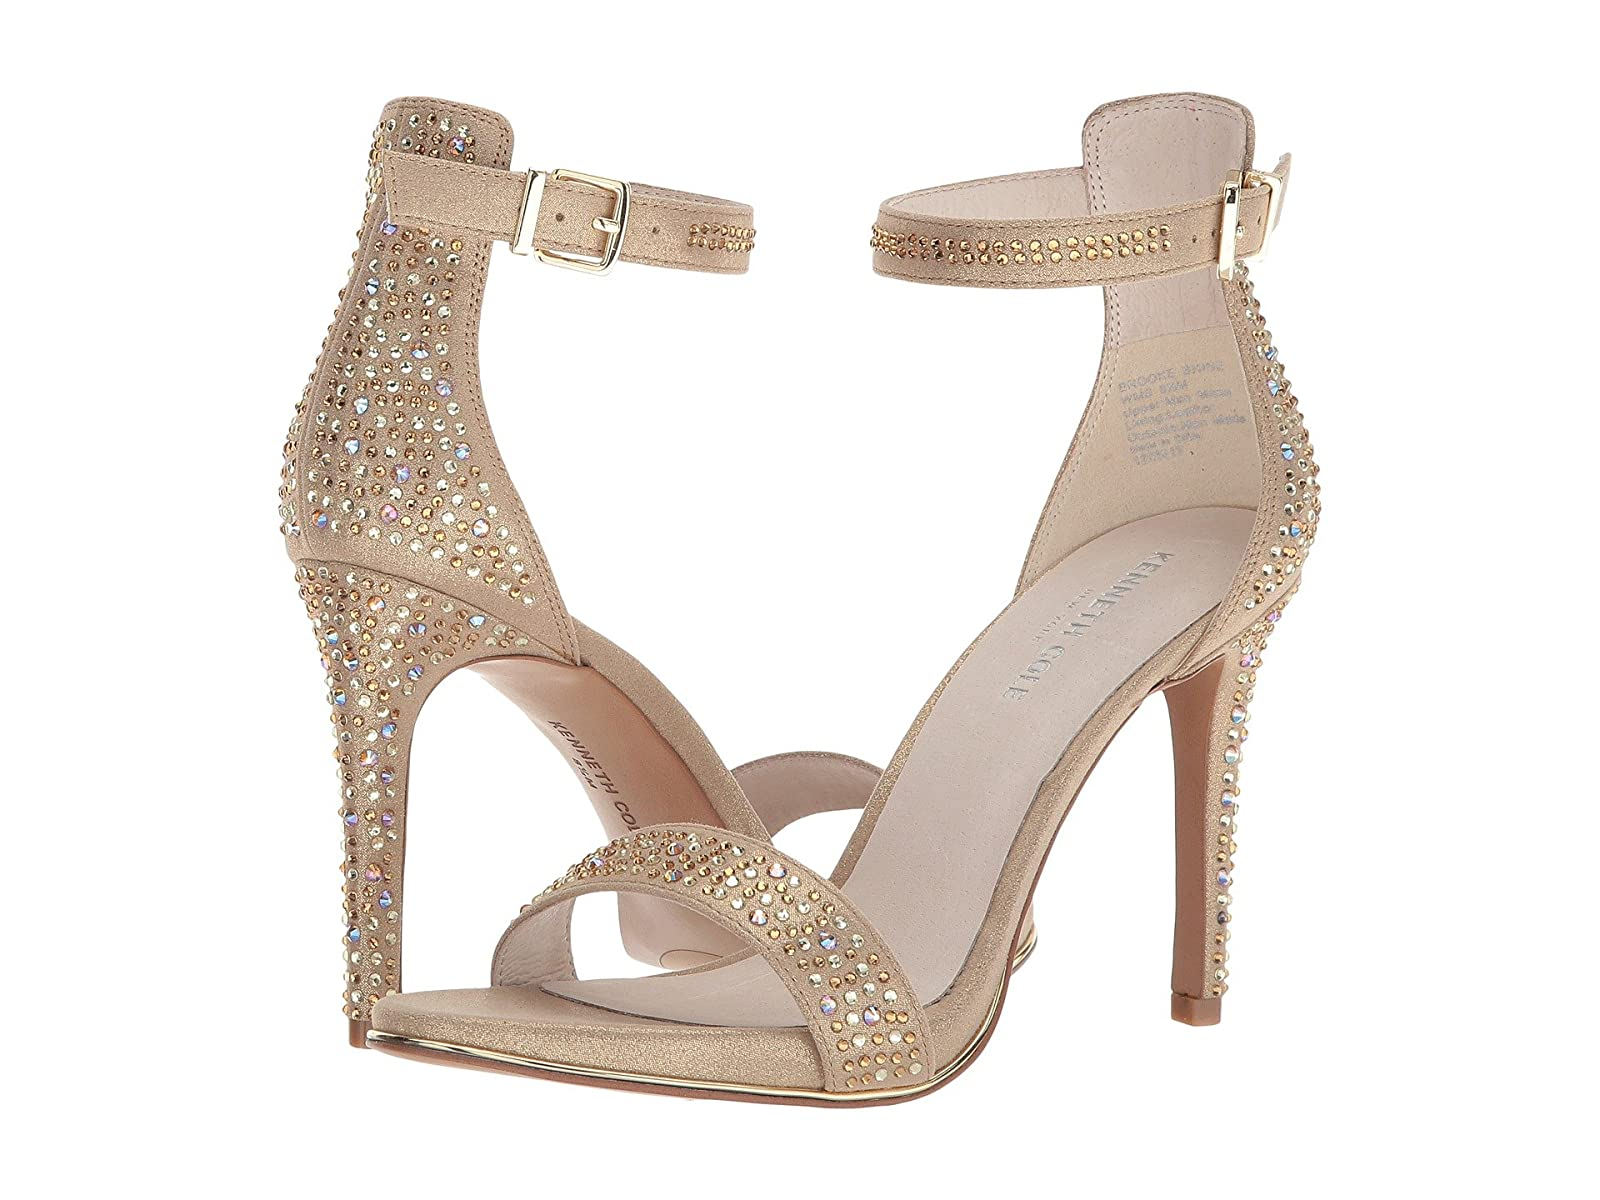 Kenneth Cole New York Brooke ShineCheap and distinctive eye-catching shoes